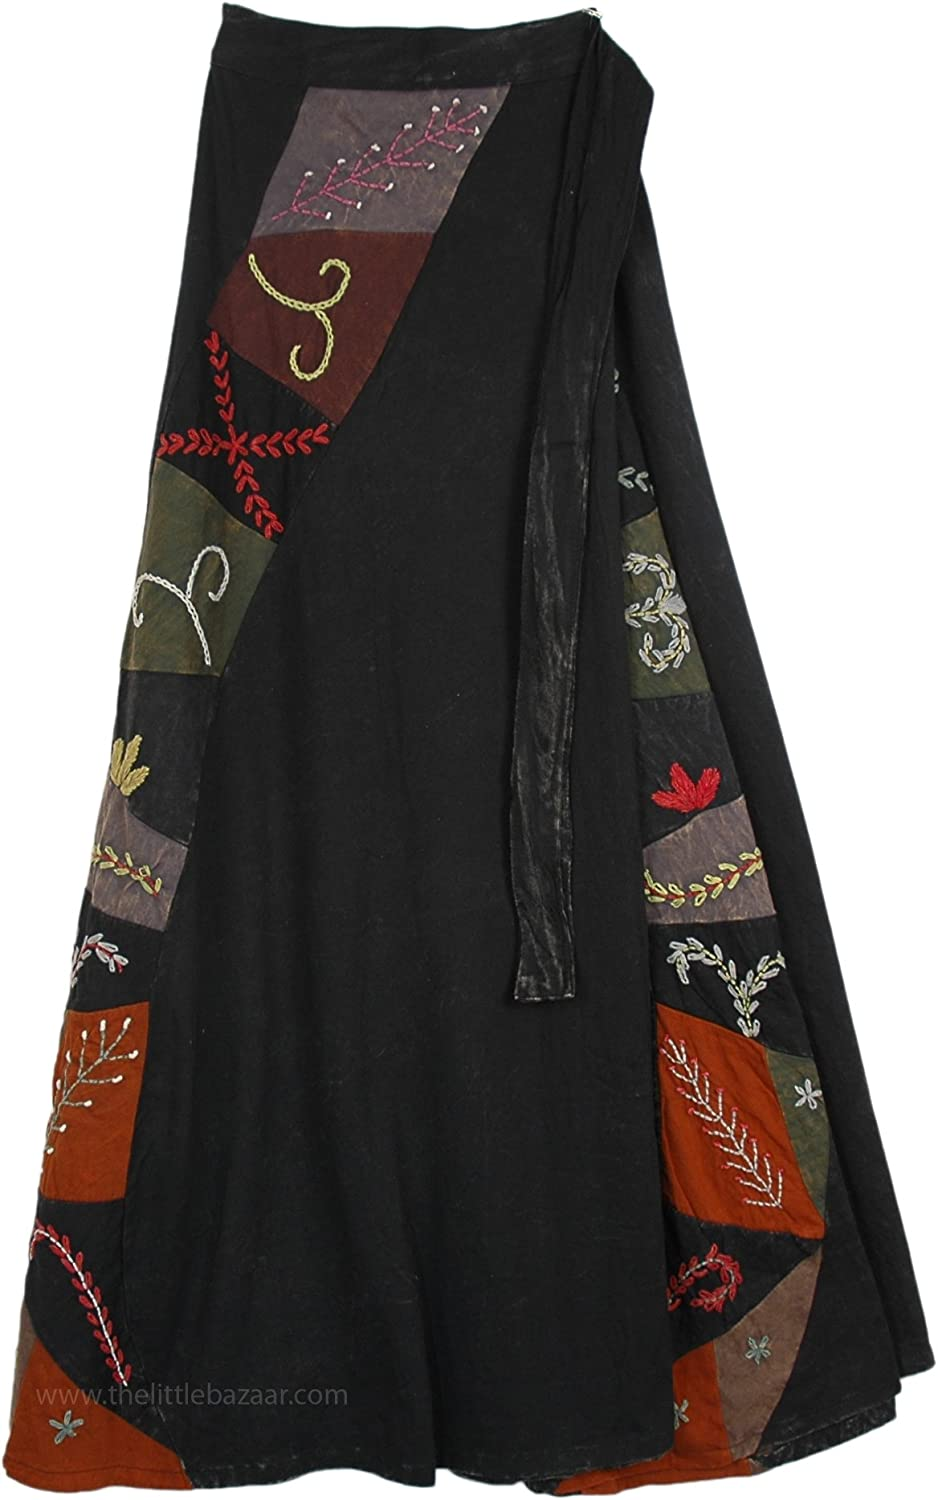 TLB - Patchwork and Hand Embroidered Deep Black Wrapper Skirt - L:37